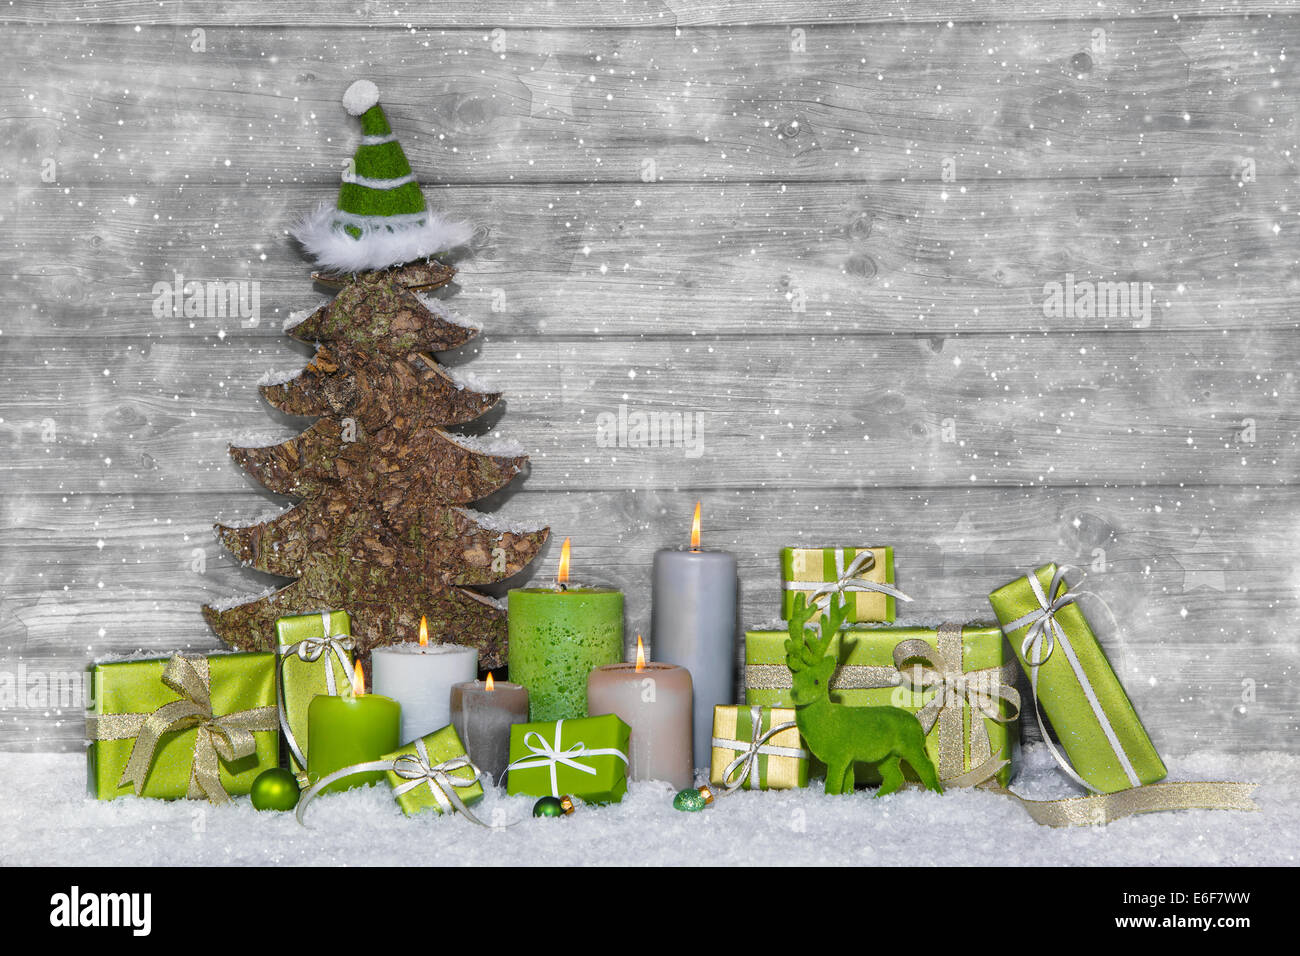 Shabby Chic Green And White Christmas Decoration On Grey Wooden Stock Photo Alamy